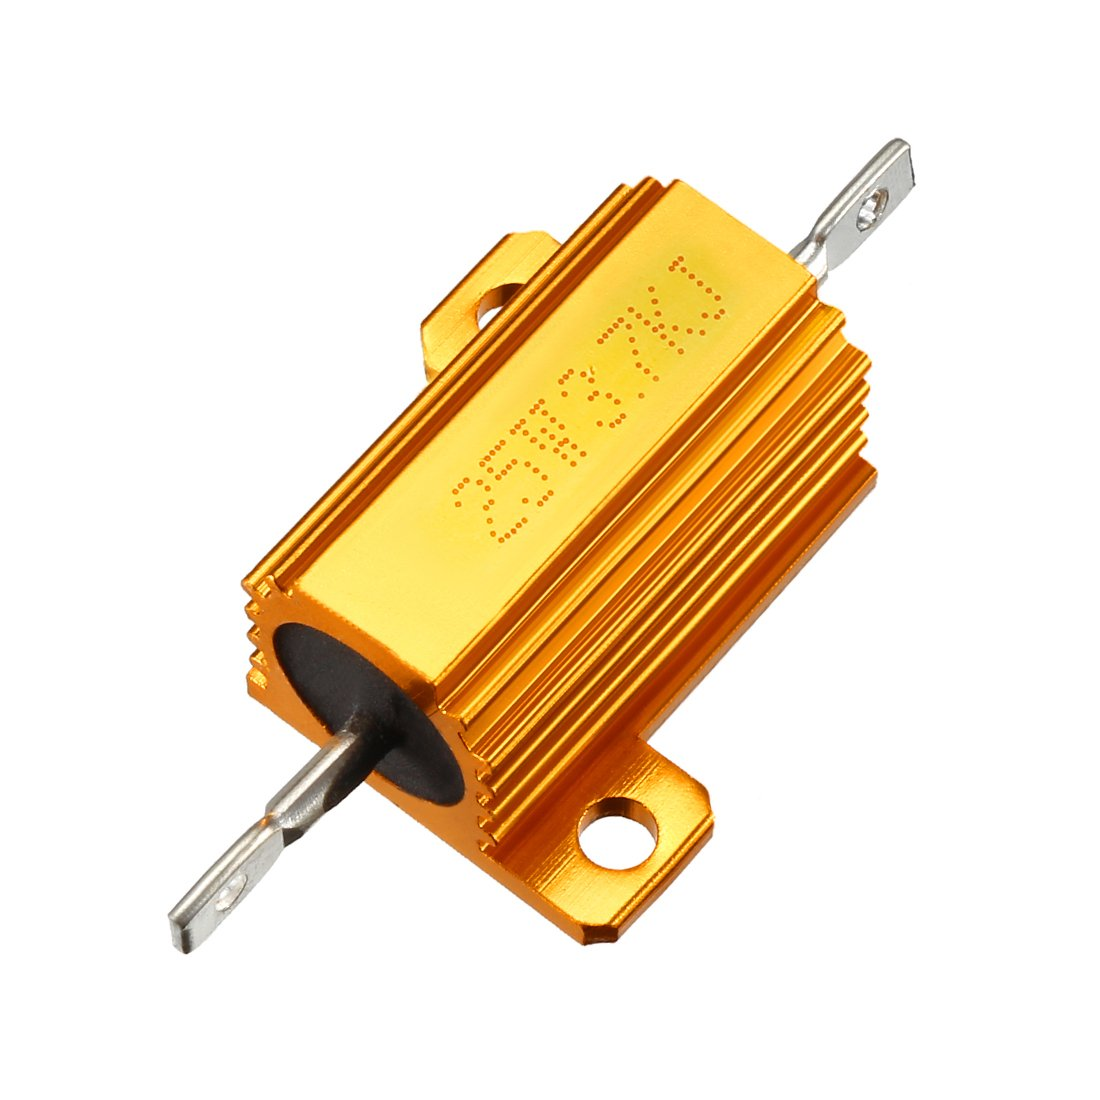 uxcell 25W 3.7K Ohm 5/% Aluminum Housing Resistor Screw Tap Chassis Mounted Aluminum Case Wirewound Resistor Load Resistors Gold Tone 1 pcs a18032700ux0131